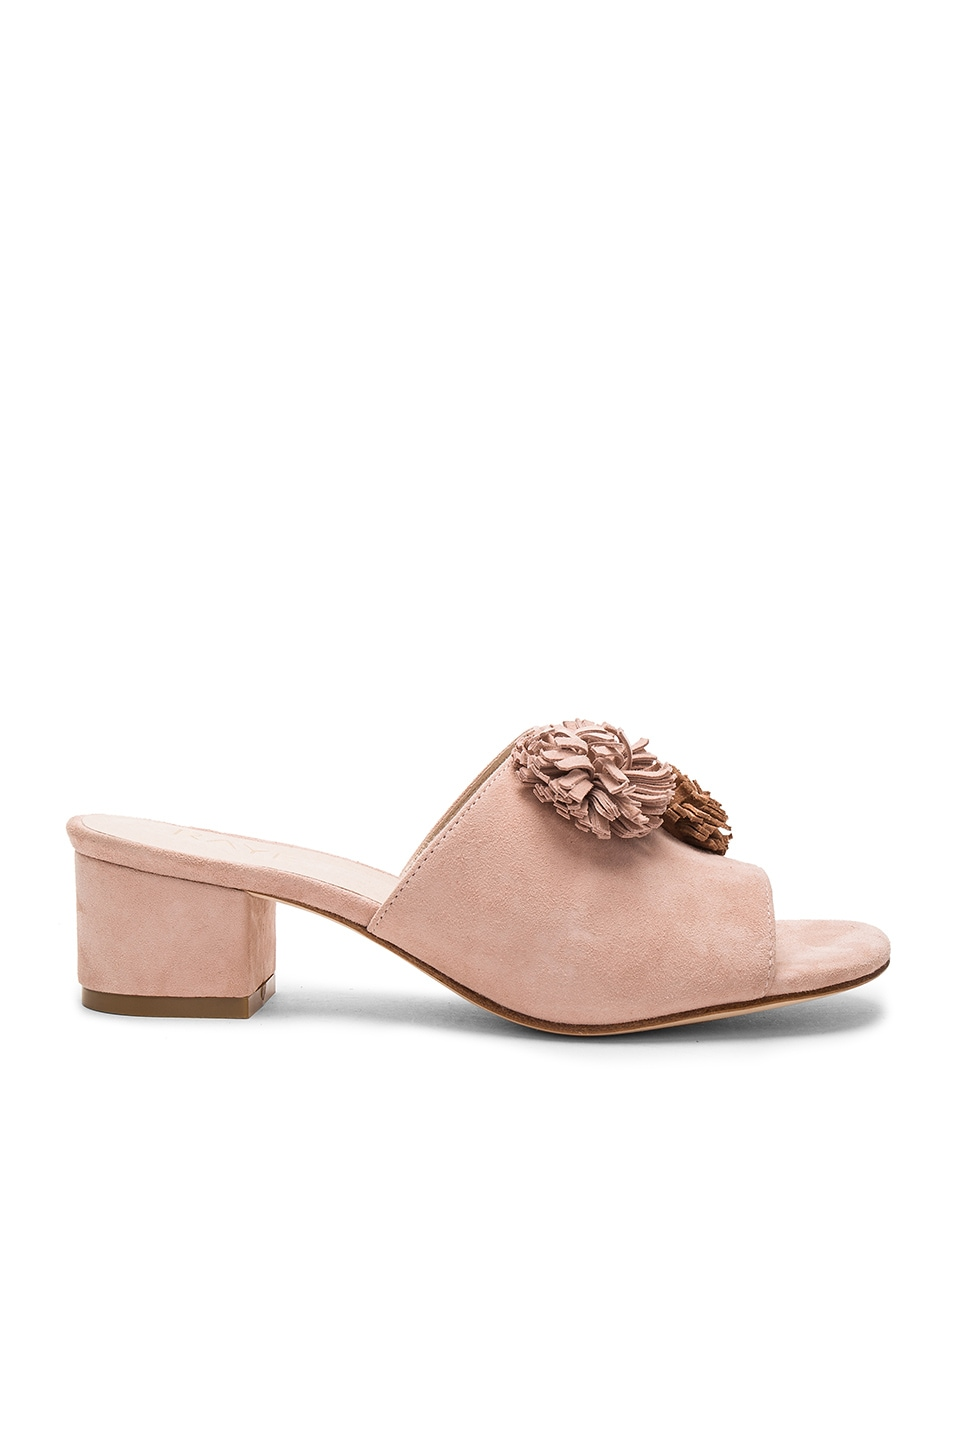 RAYE Chrissy Mule in Ballet